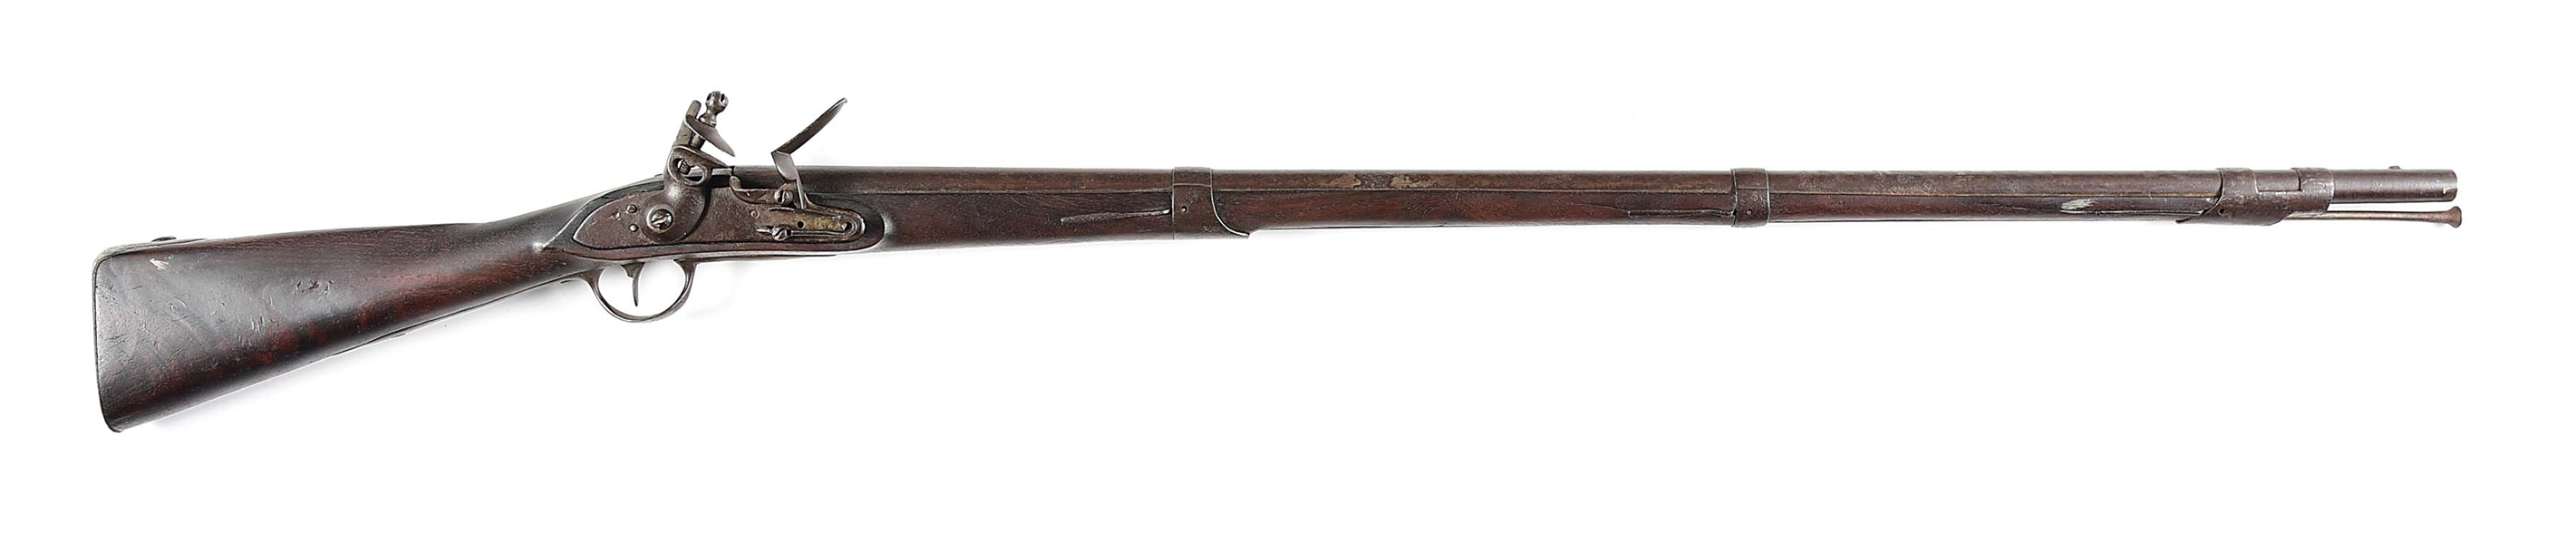 (A) UNMARKED MODEL 1812 FLINTLOCK .69 CALIBER CONTRACT RIFLE.